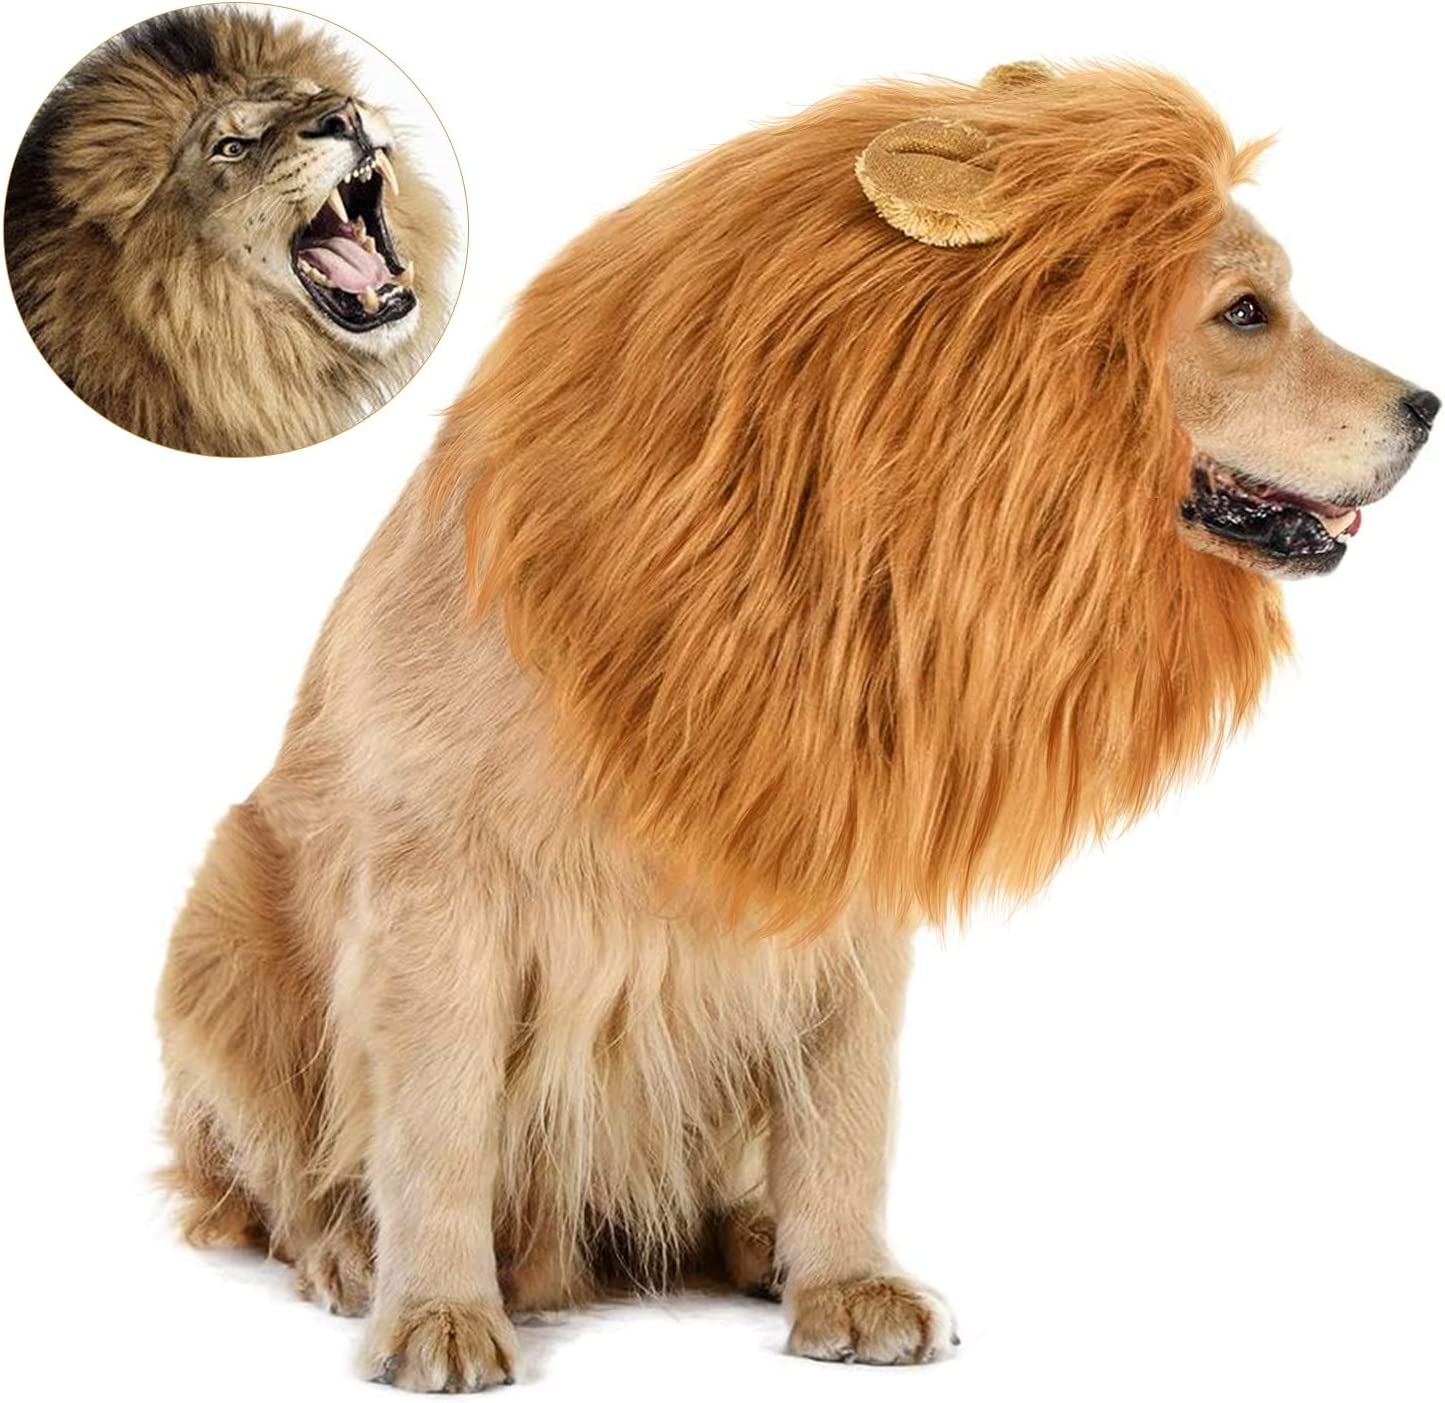 GALOPAR Pet Costume, Dogs or Cats Outfits Beauty and The Beast Costume for Halloween Christmas Cosplay Parties Accessories